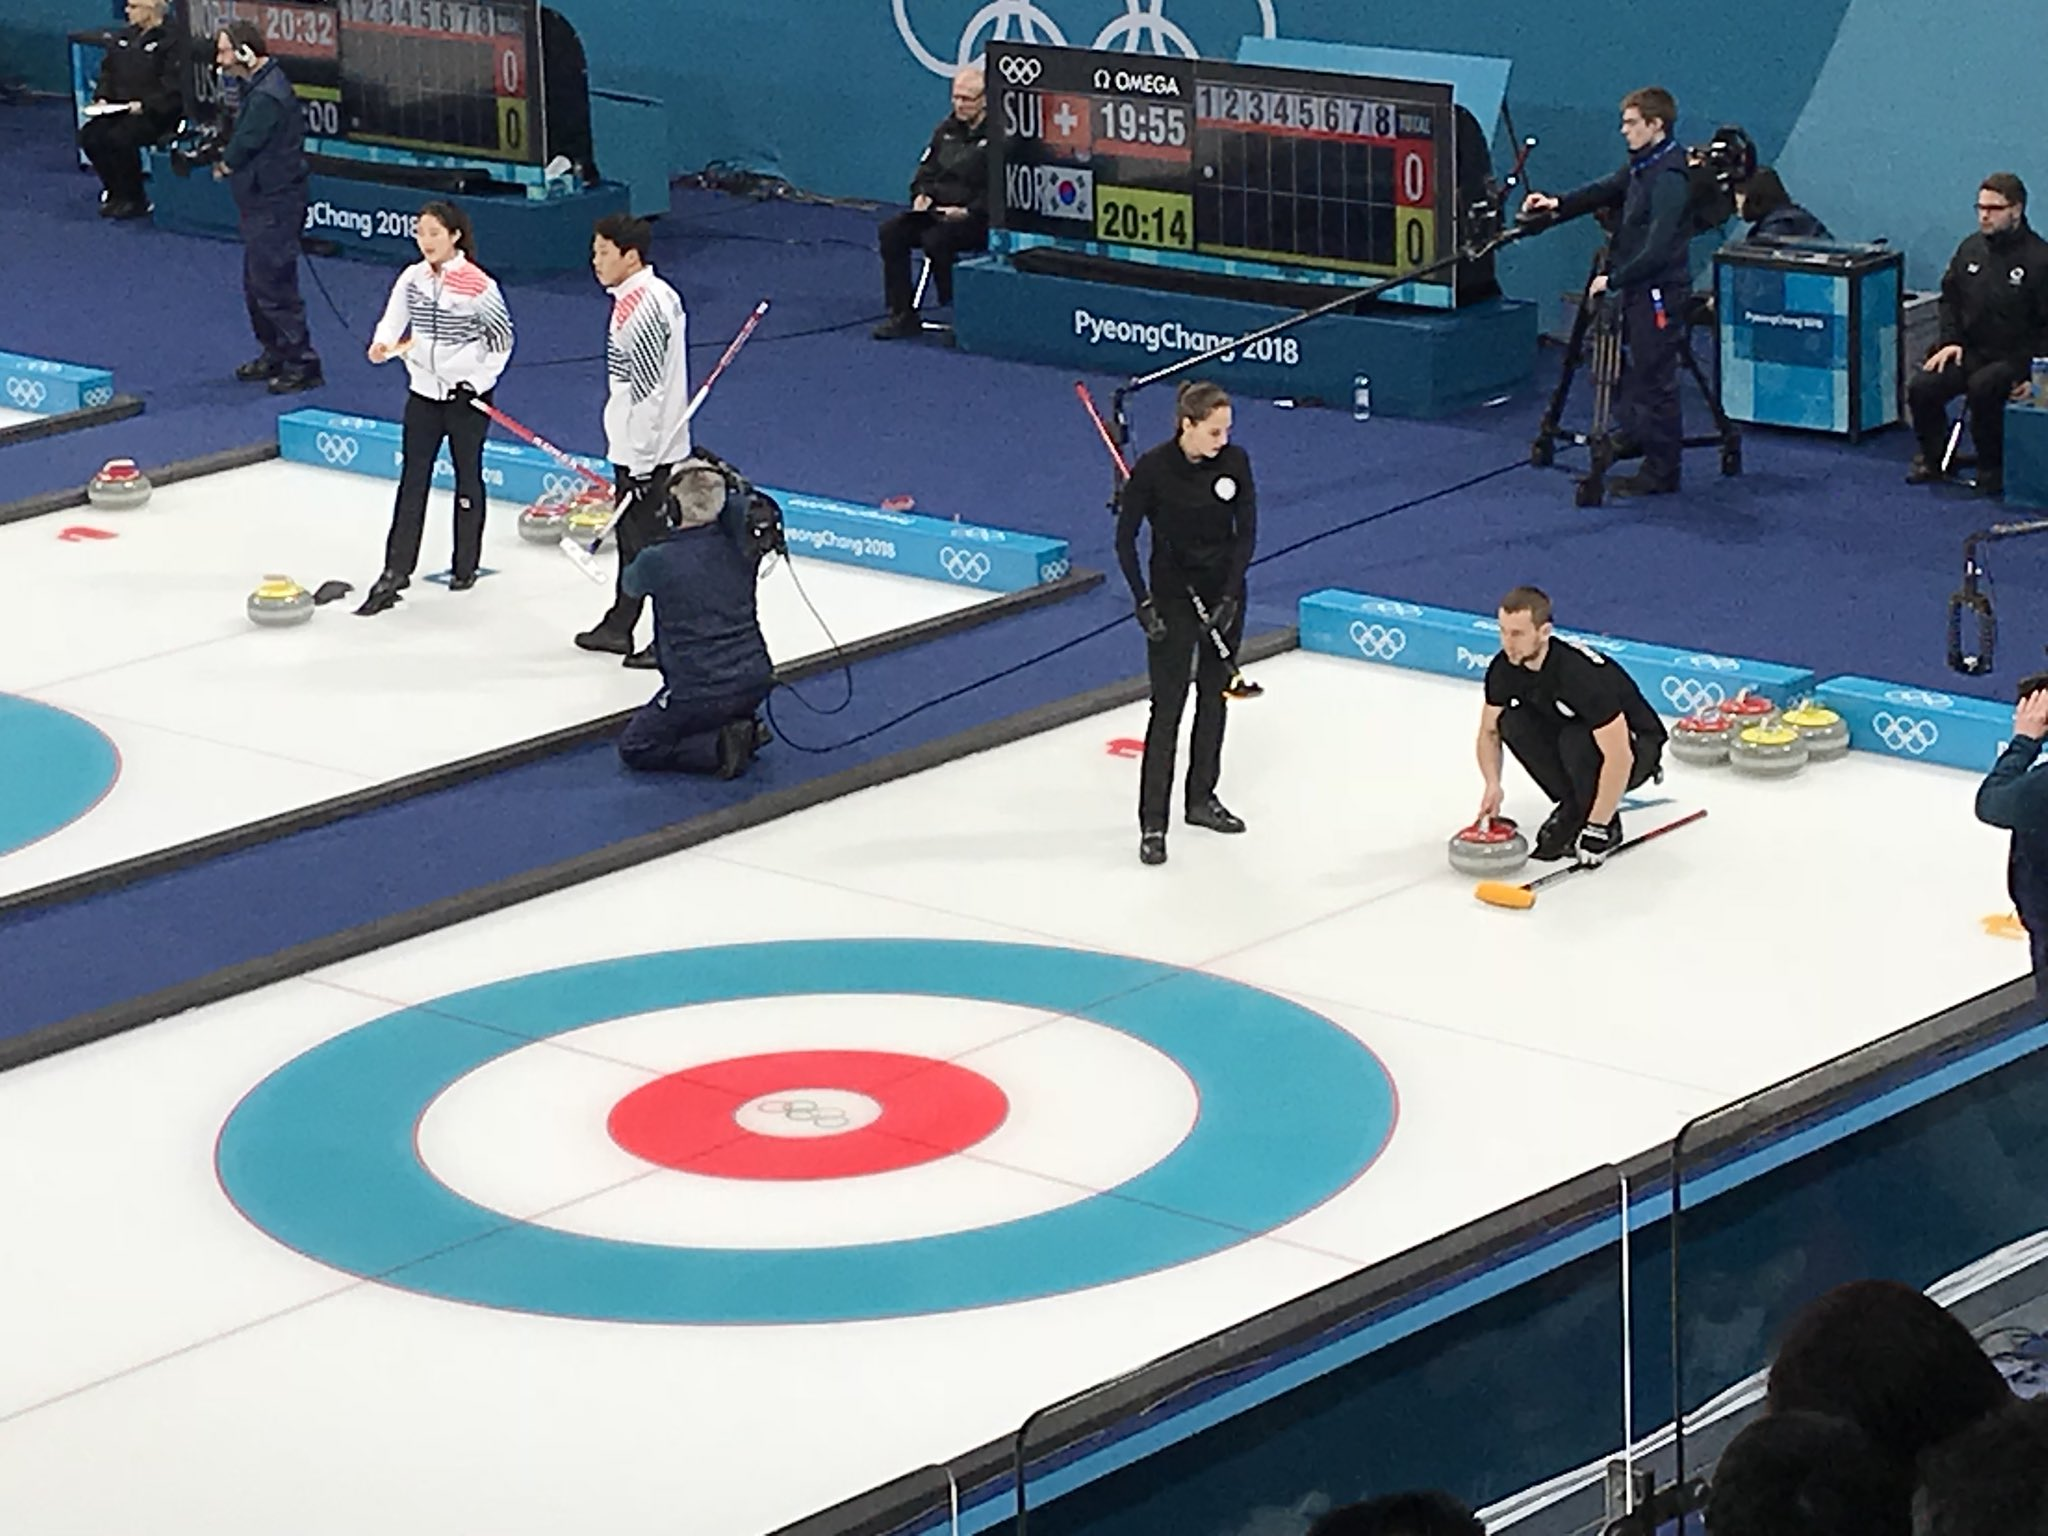 Mixed Doubles Curling in Pyeongchang: Round Robin Wrap-Up